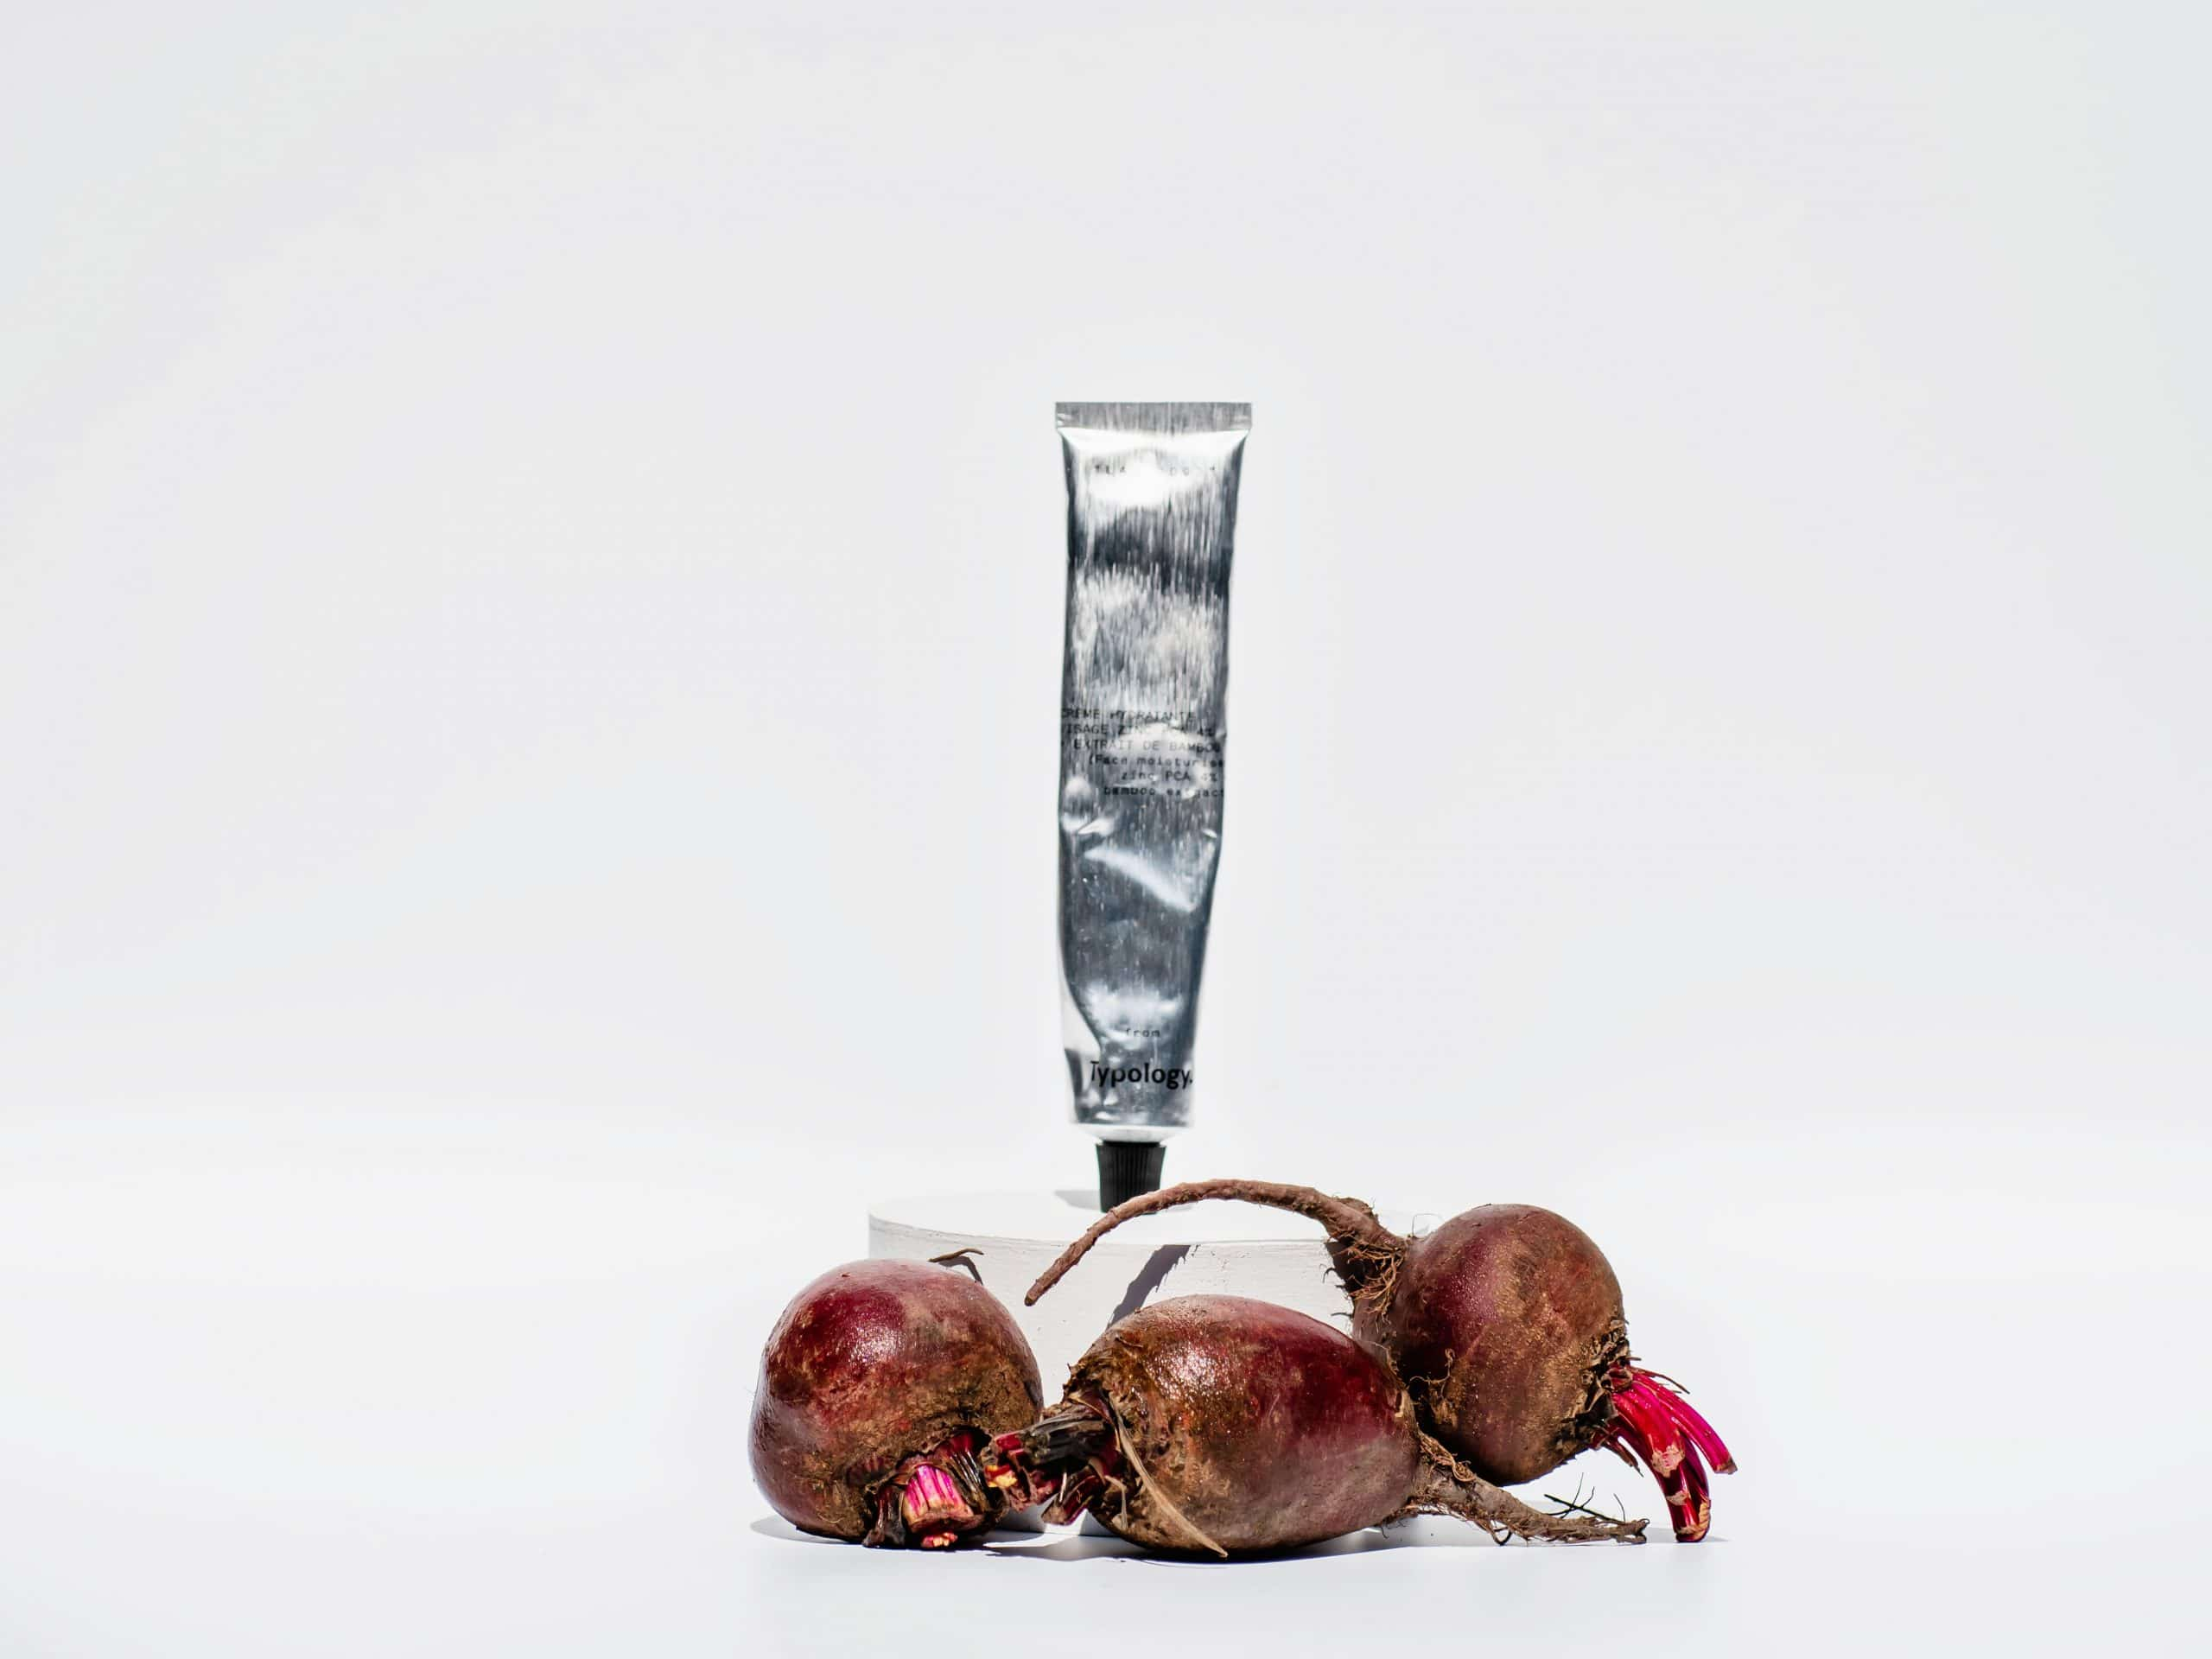 Typology zinc pca moisturizer placed with three beetroots